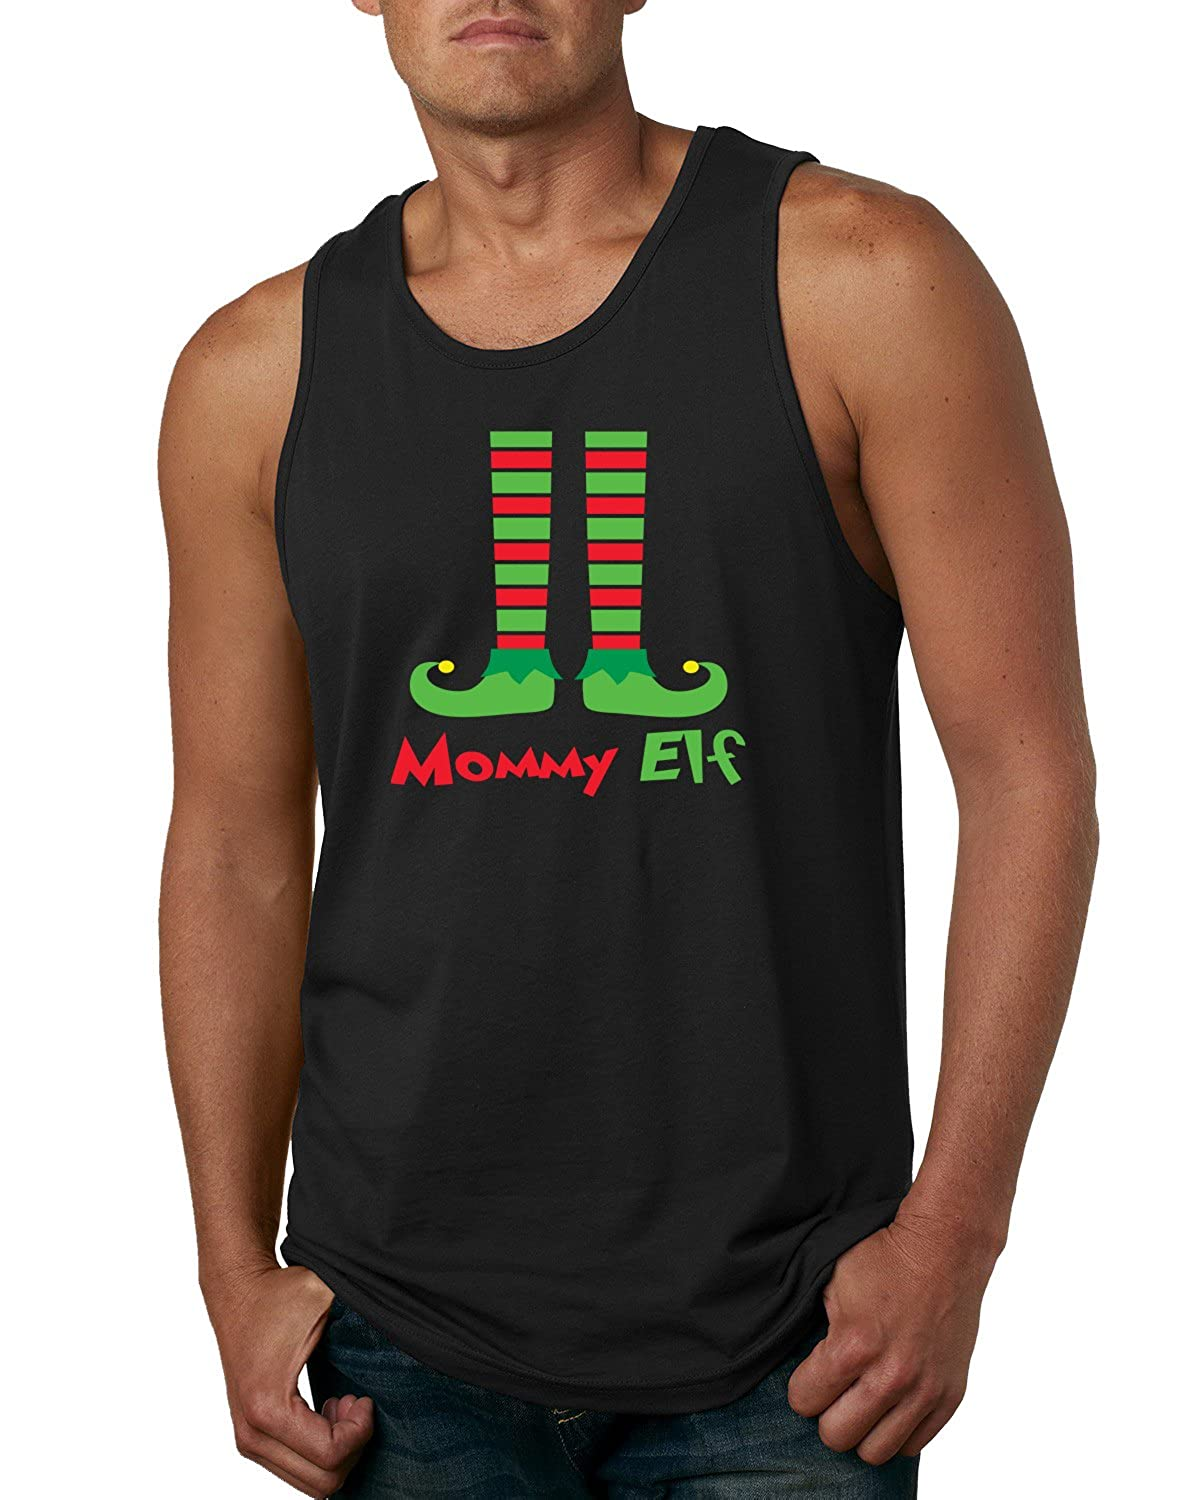 Stocking Shoes Wild Bobby Mommy Elf Mens Ugly Christmas Fashion Graphic Tank Top